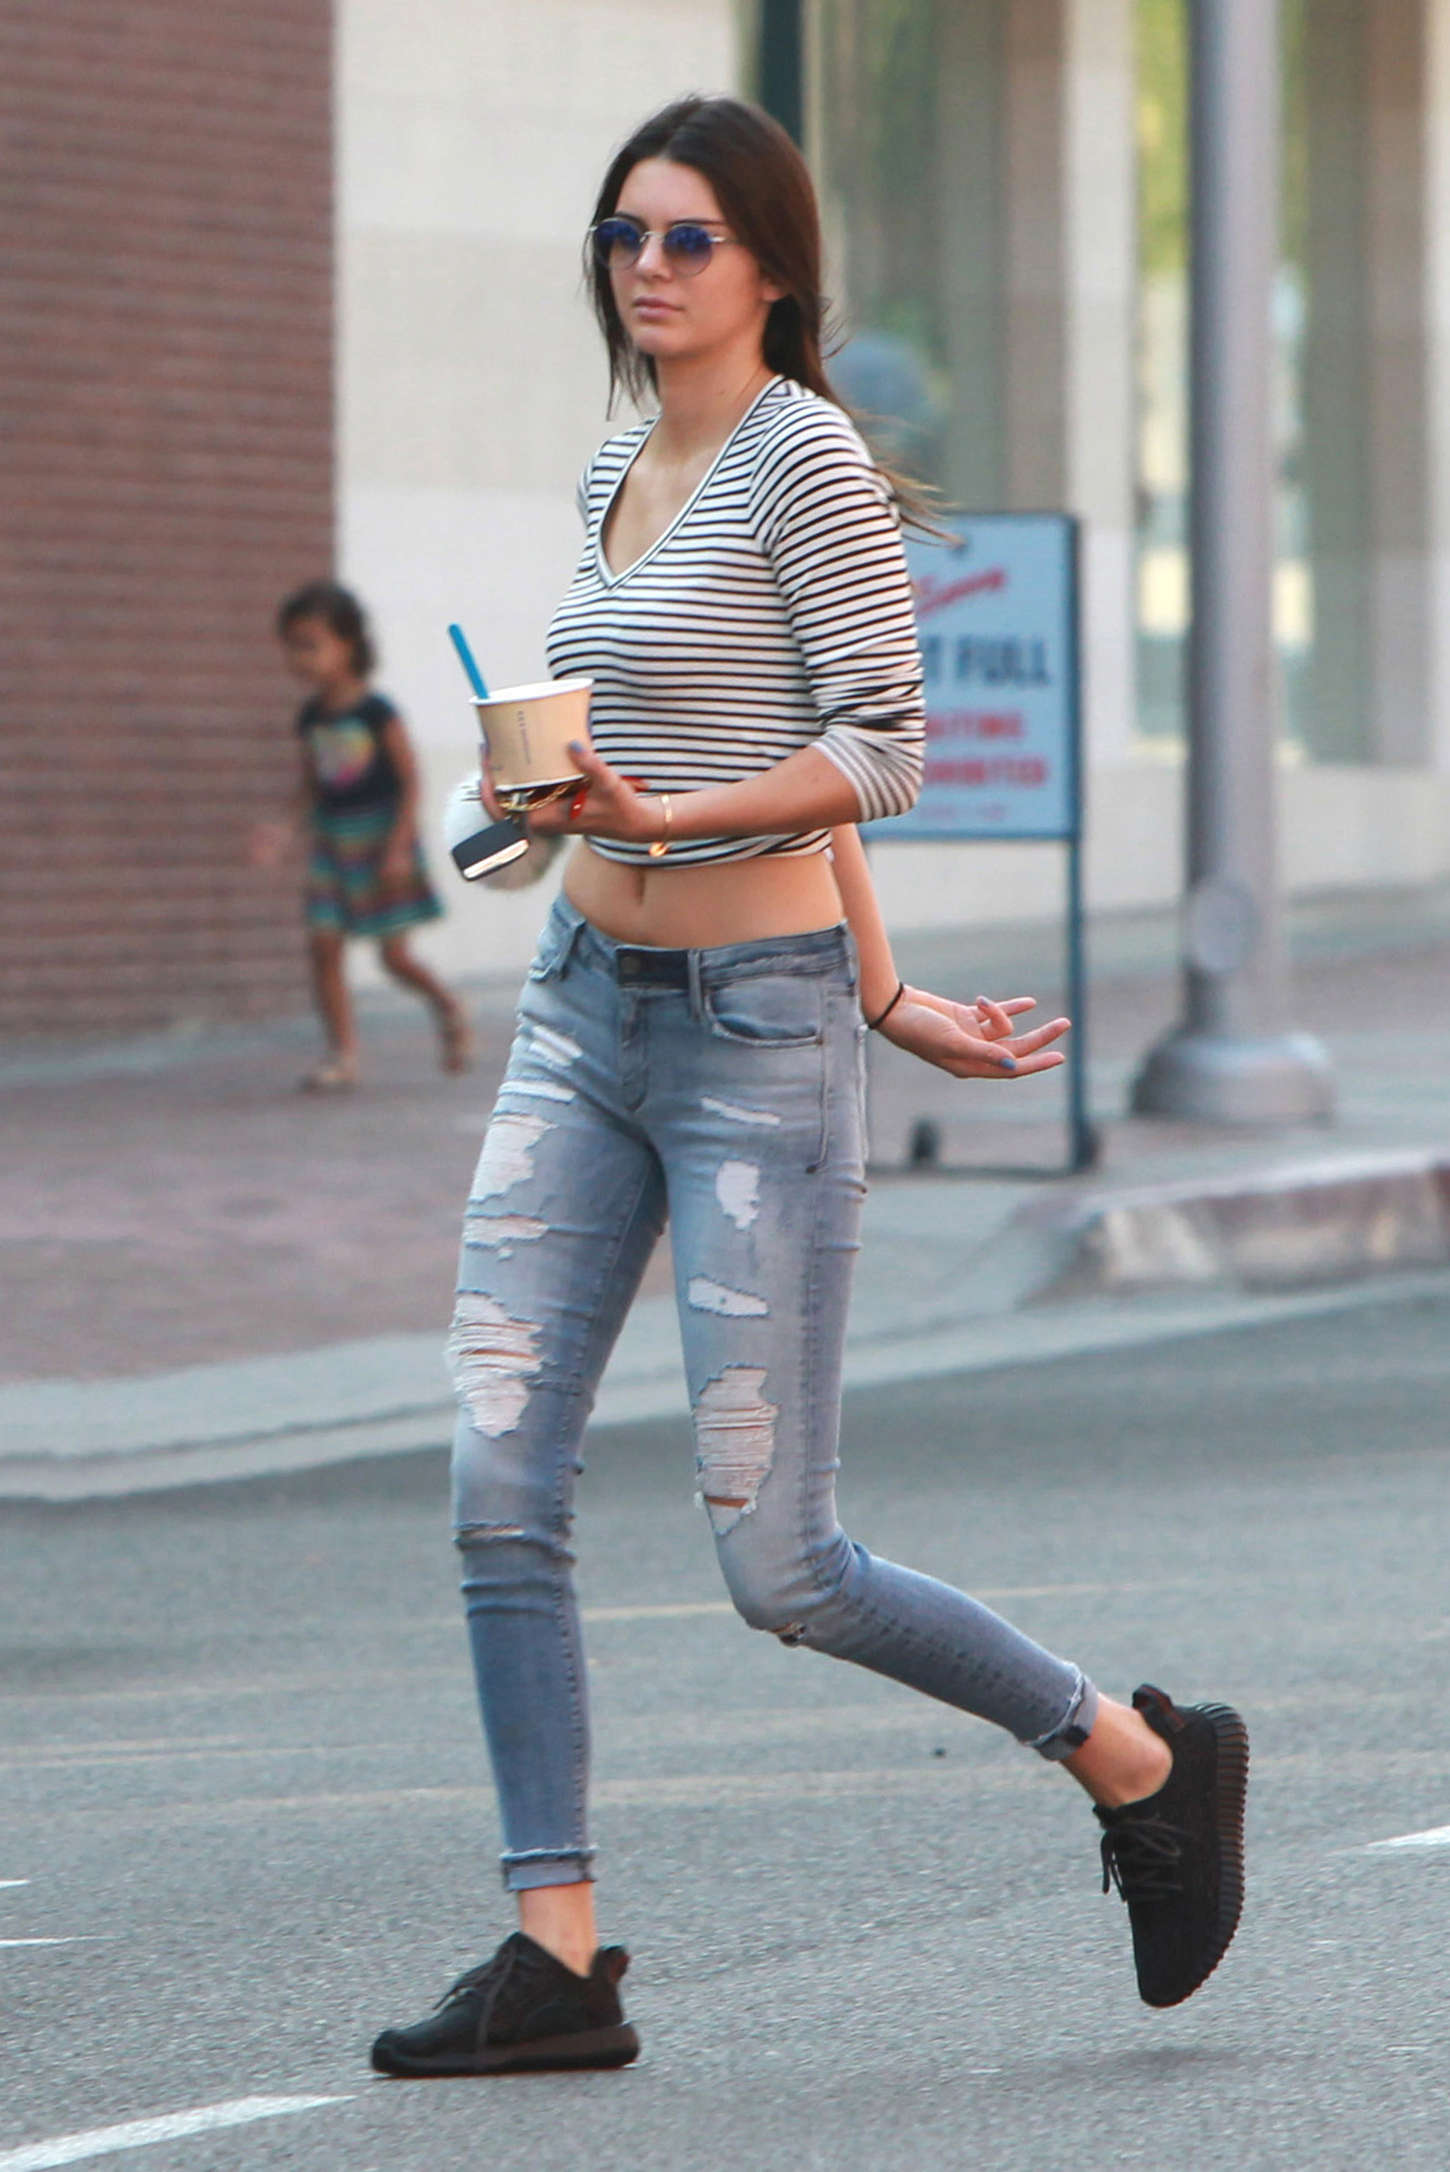 Kendall Jenner Booty in Jeans -04 - GotCeleb